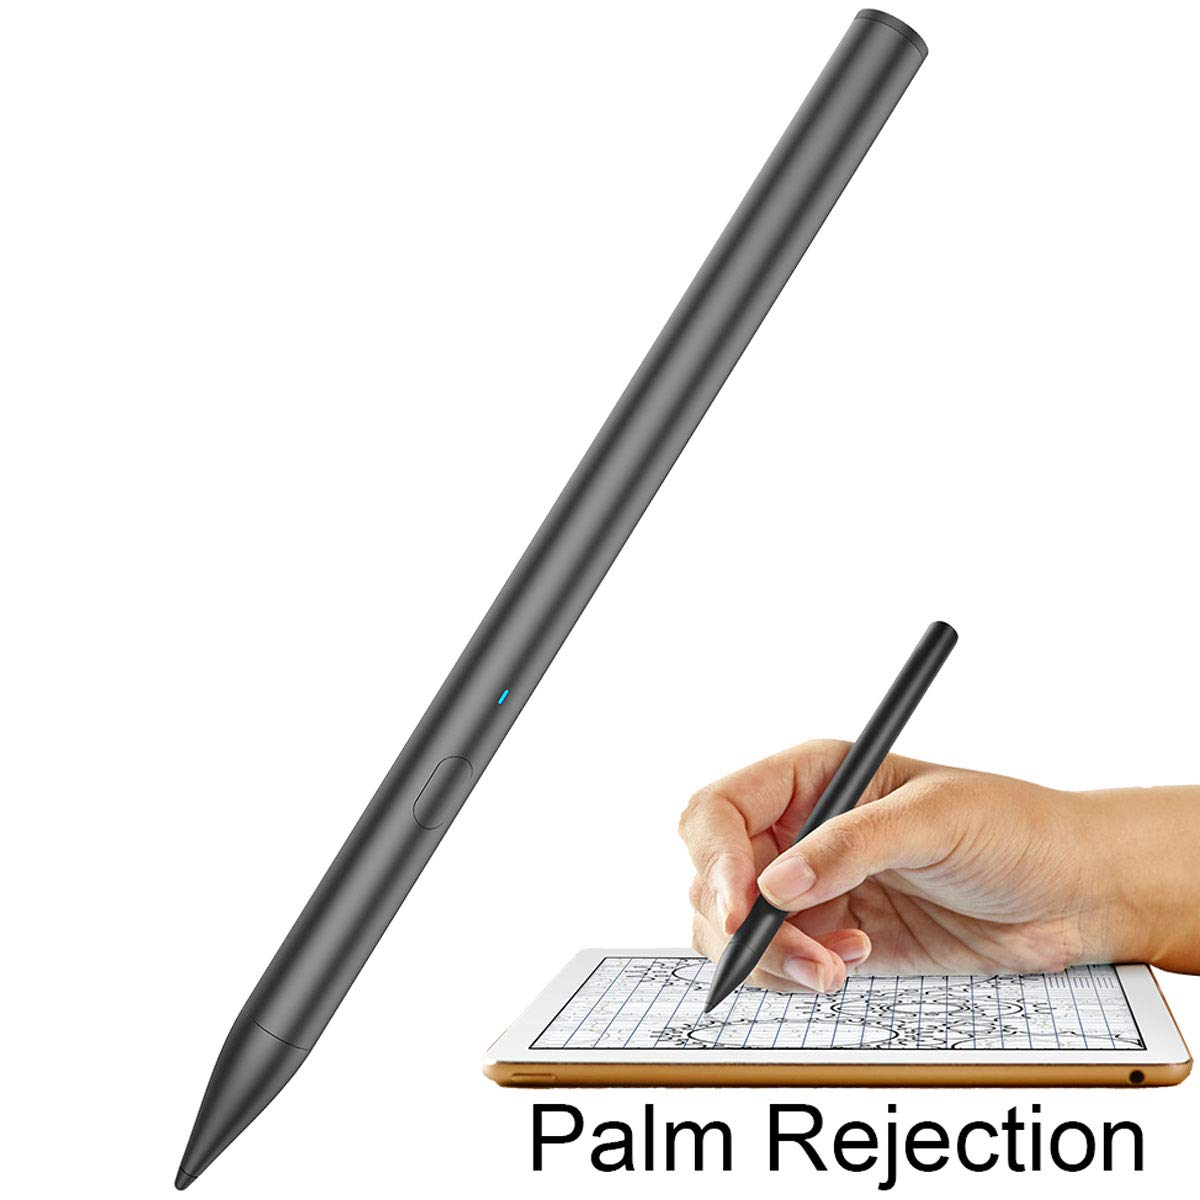 Stylus Pens for Apple ipad Pencil, with Palm Rejection, High Sensitivity Capacitive Stylus for iPad Pro (3rd Gen), iPad (6th Gen), iPad Air (3rd Gen), iPad Mini (5th Gen), Black Digital Pen by YOBWIN